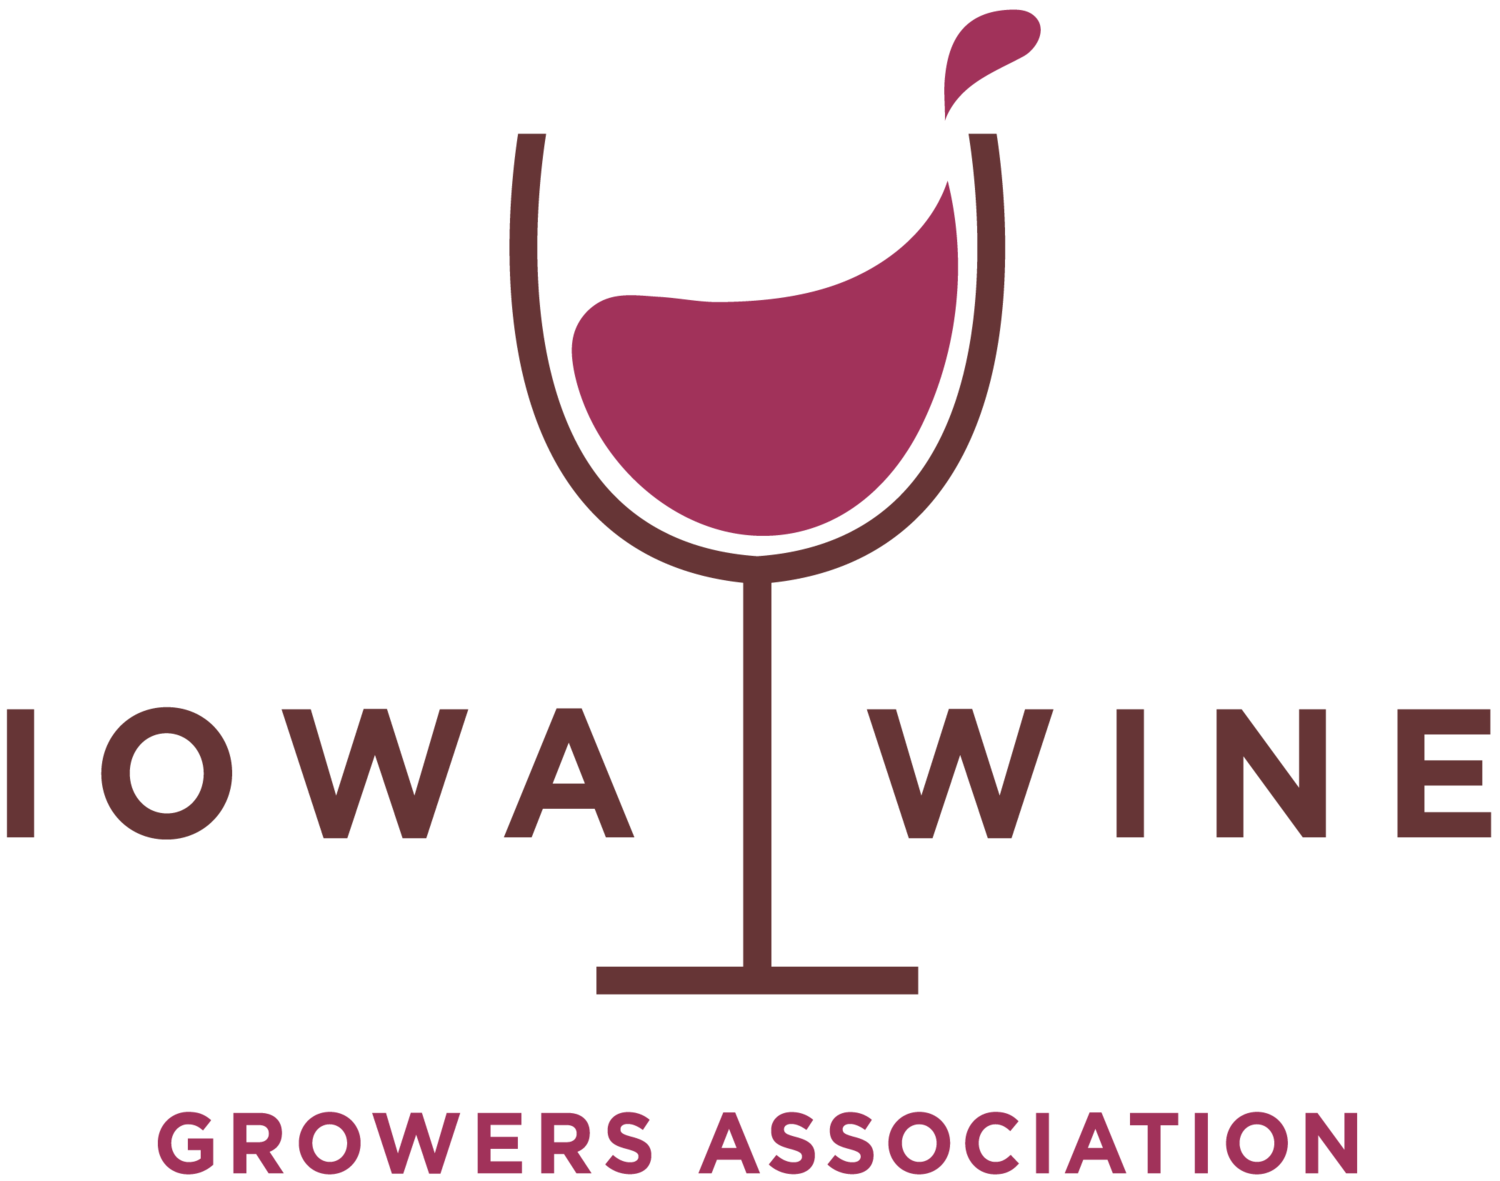 wineries in iowa map Winery Member Map Iowa Wine Growers Association wineries in iowa map